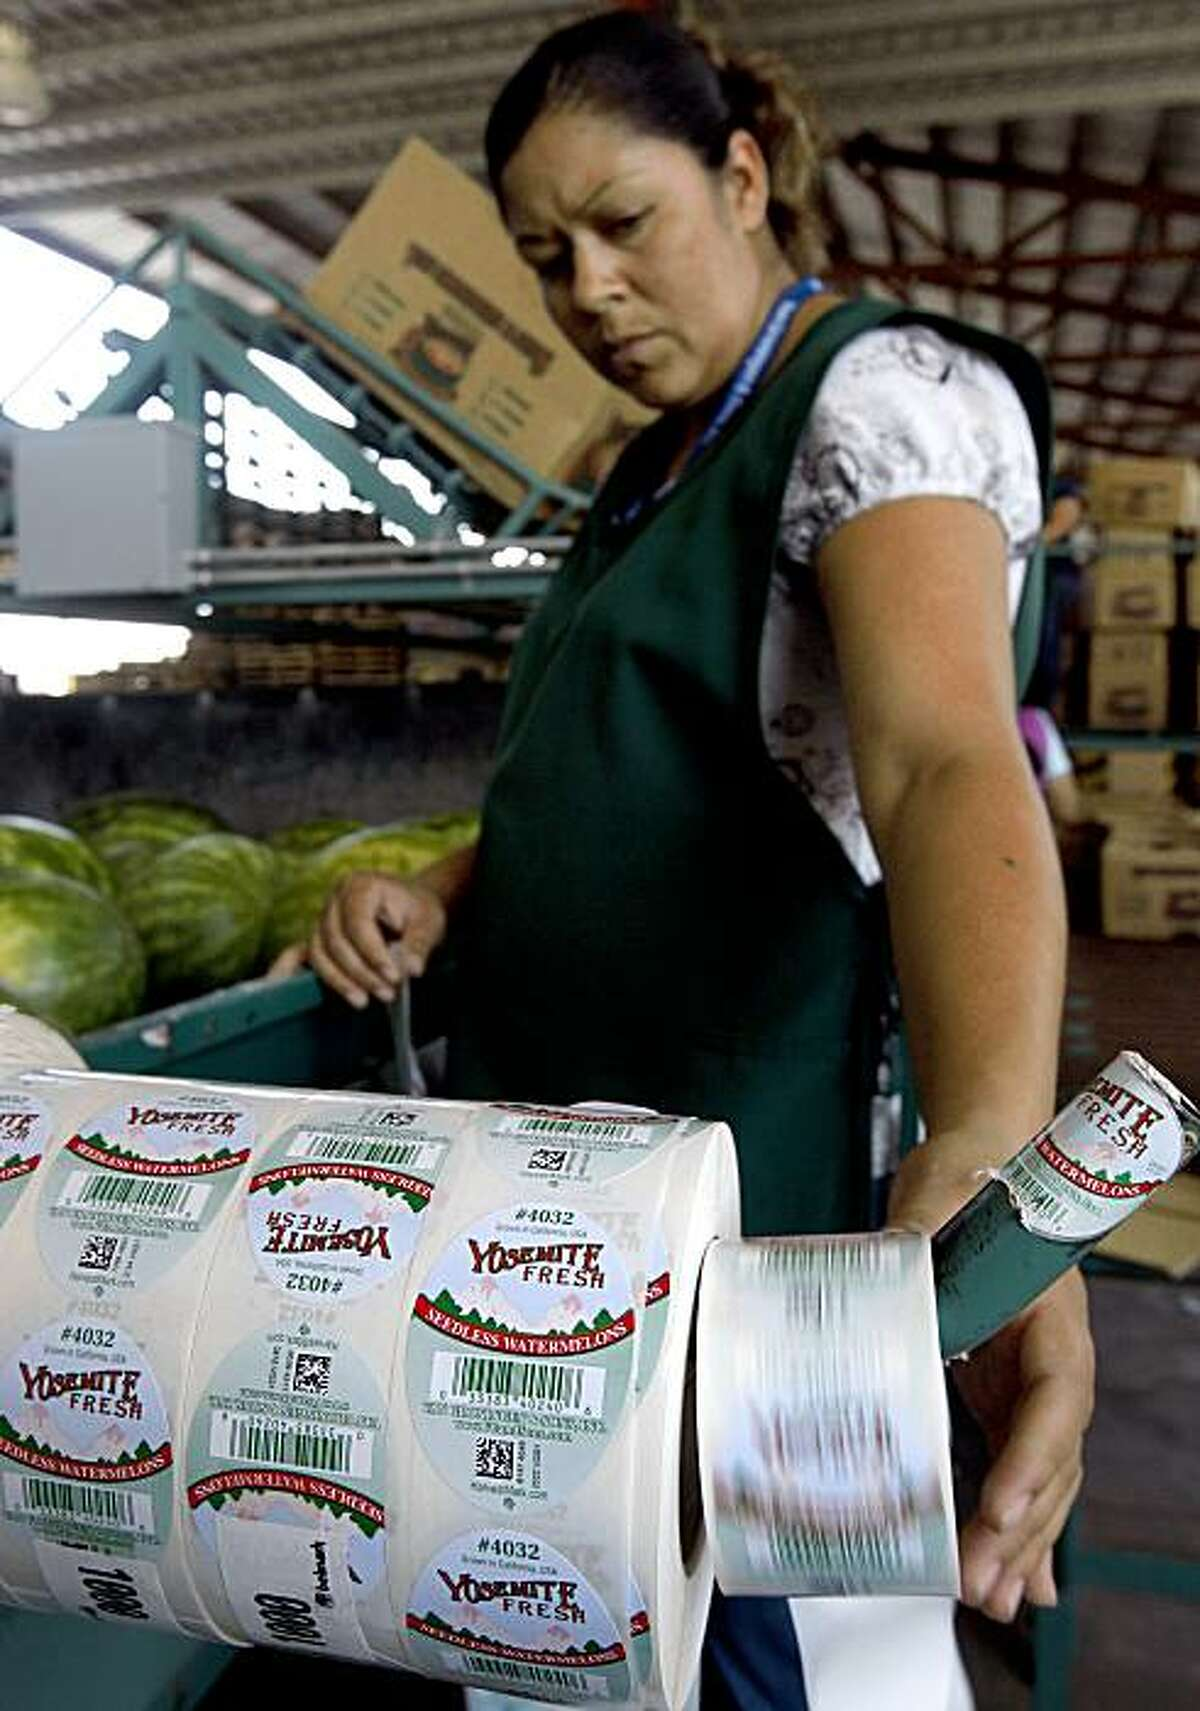 Victoria Gonzalez attaches HarvestMark tracking labels (foreground) to watermelons at the Van Groningen & Sons produce company in Manteca, Calif., on Tuesday, July 28, 2009. The new bar code system helps consumers keep track of where and when produce was grown and processed in case of an E. coli outbreak.